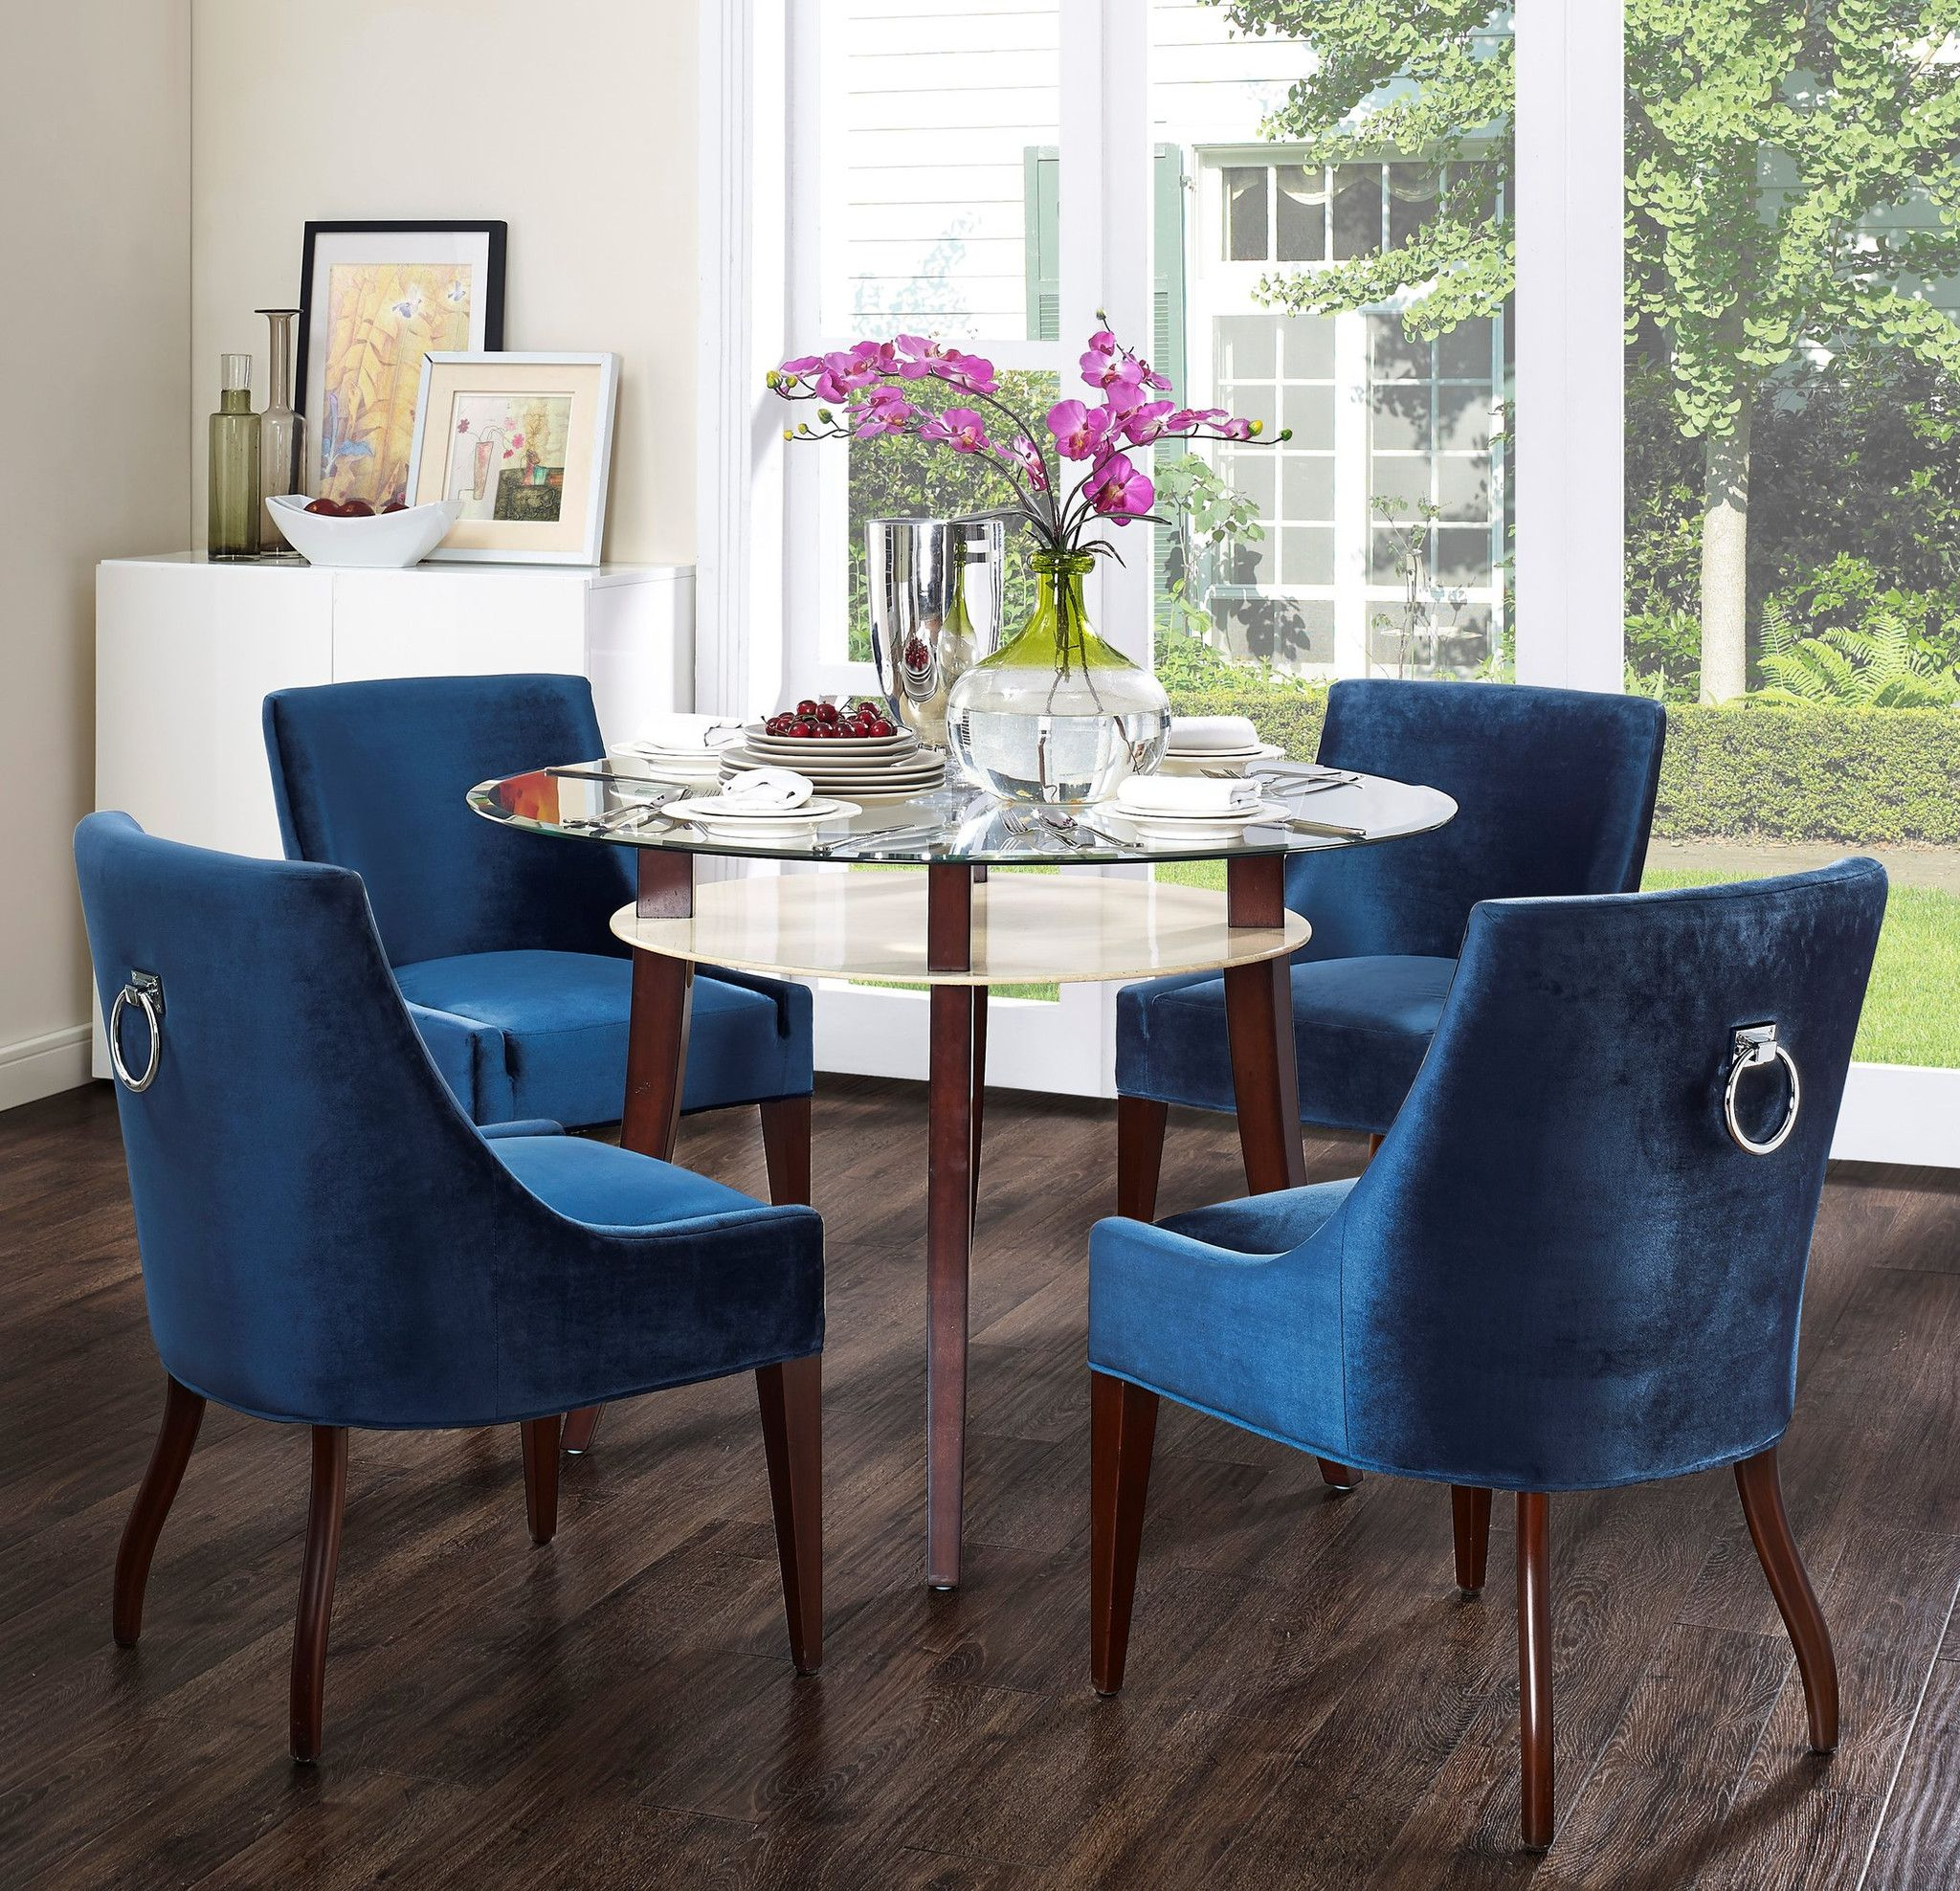 Rover Blue Velvet Dining Chair - Set of 2 from EMFURN | Dining ...